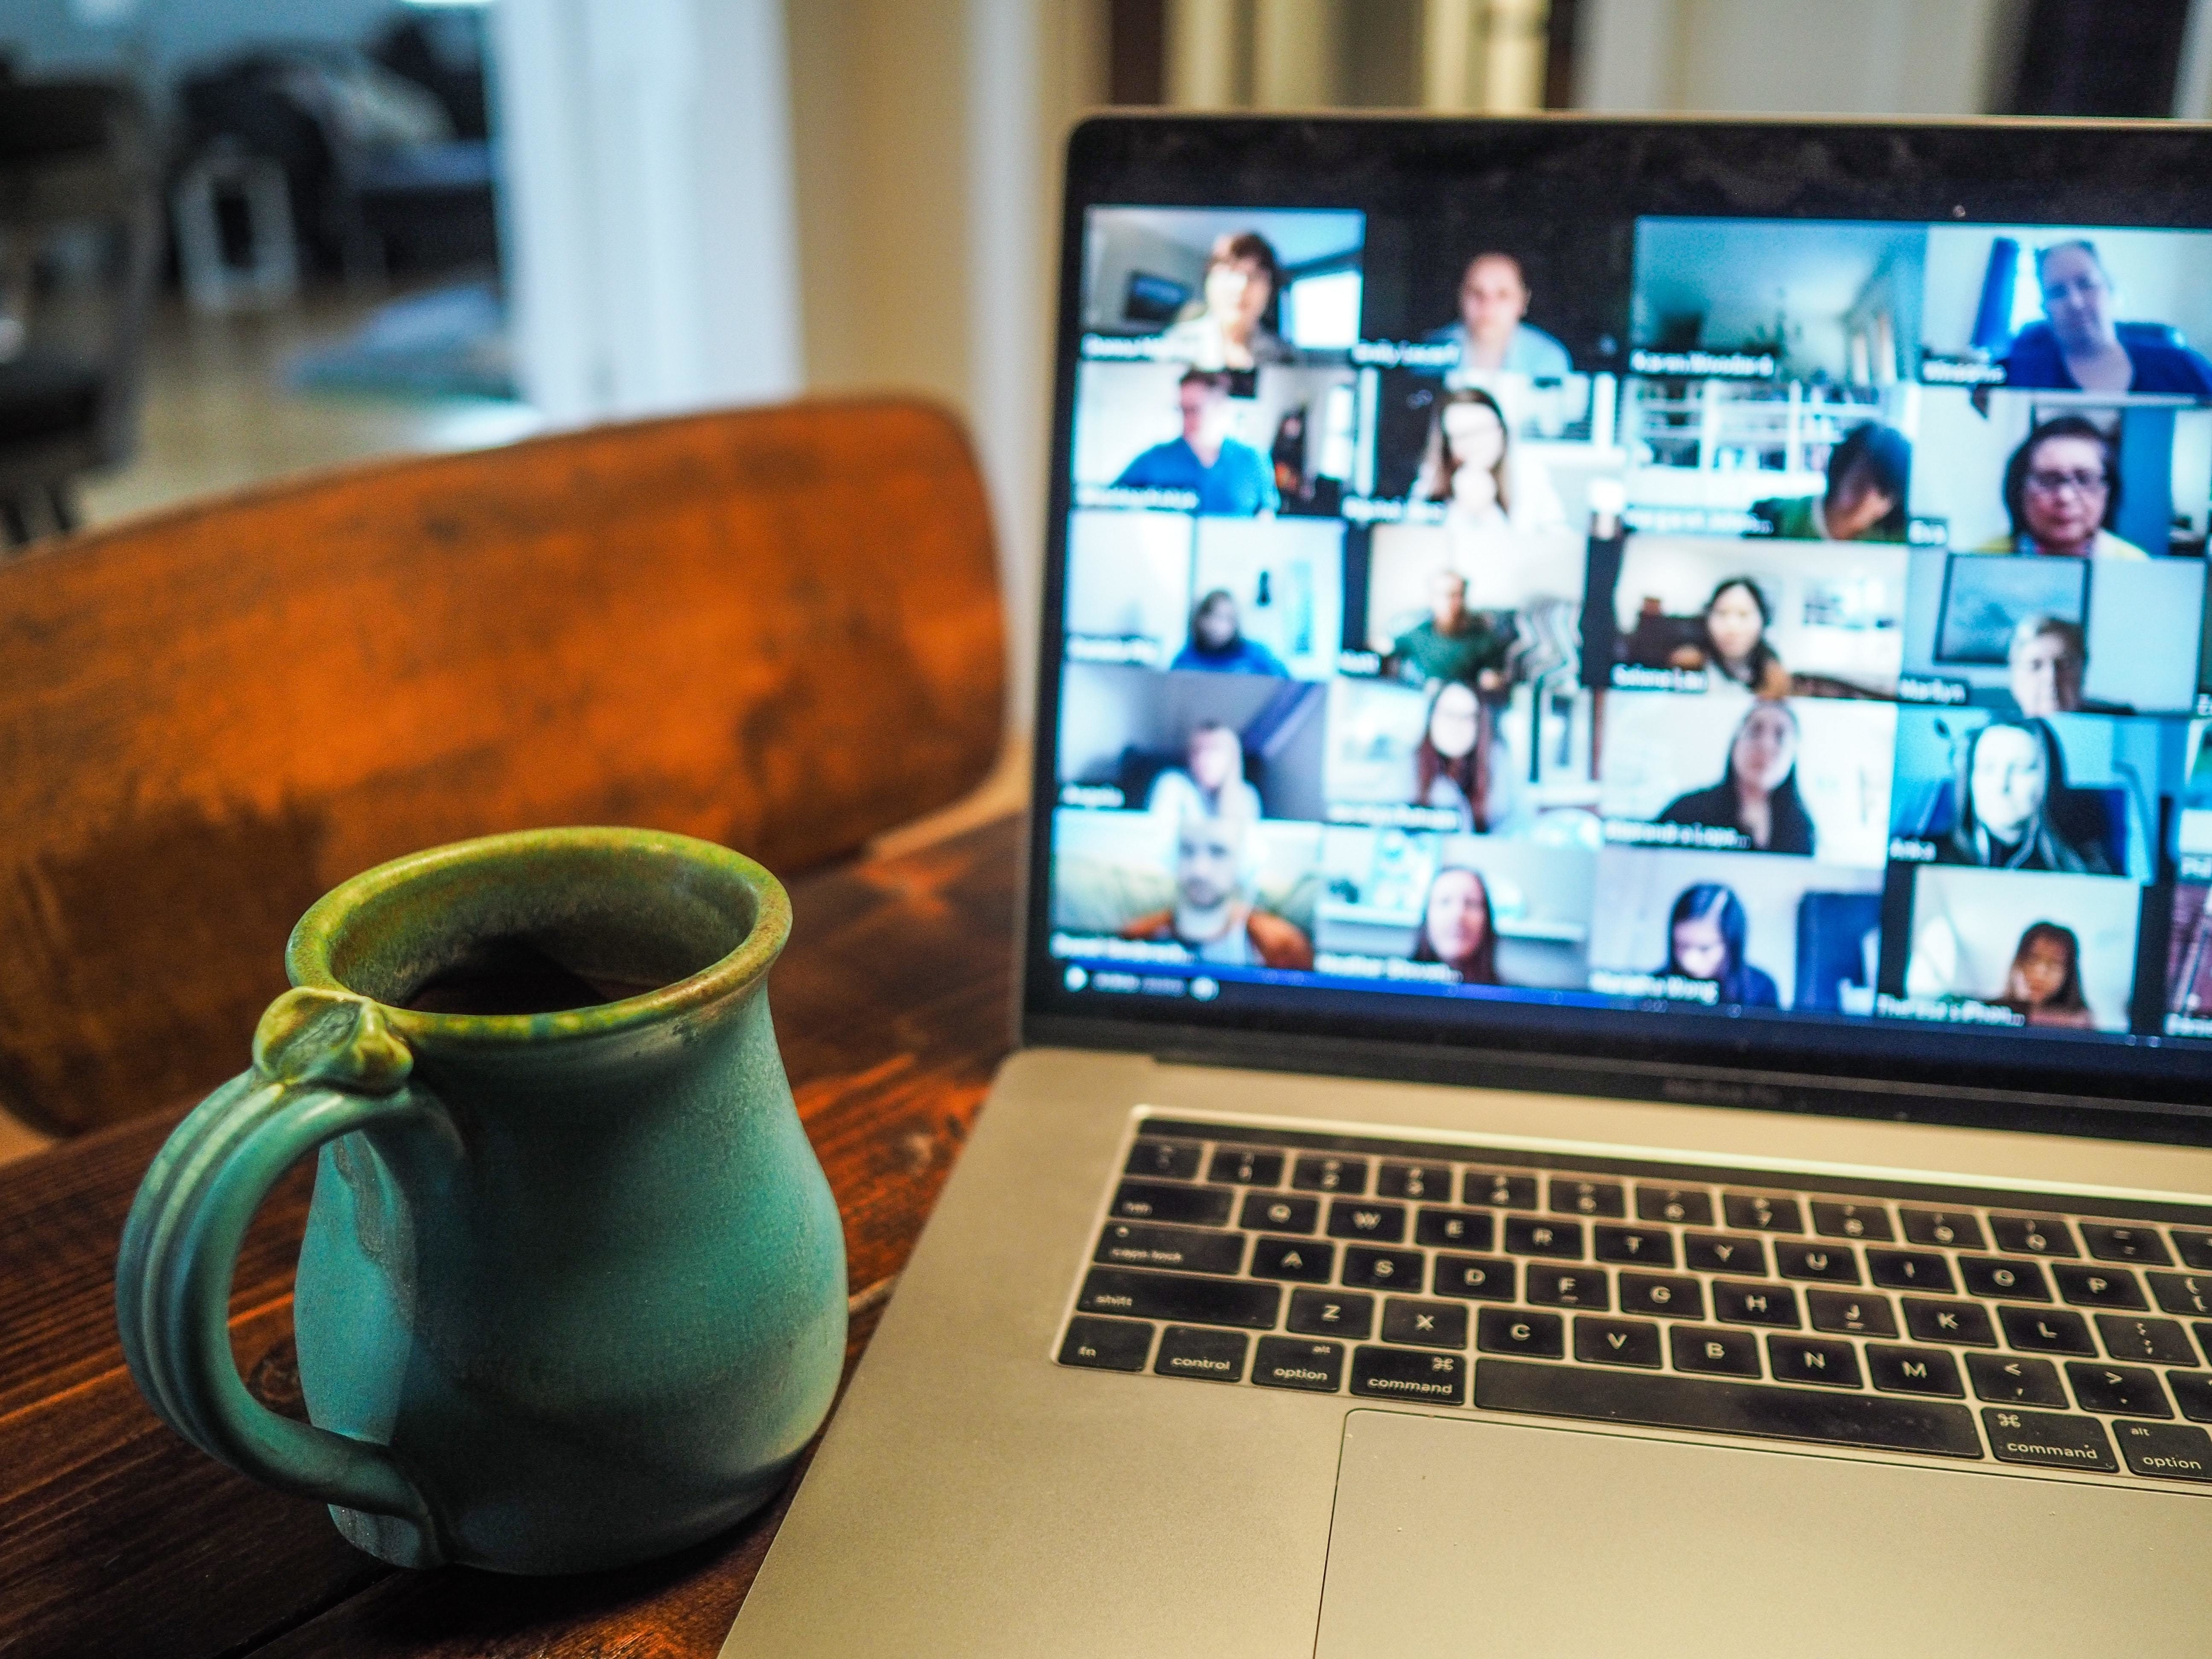 A video conference on a laptop.